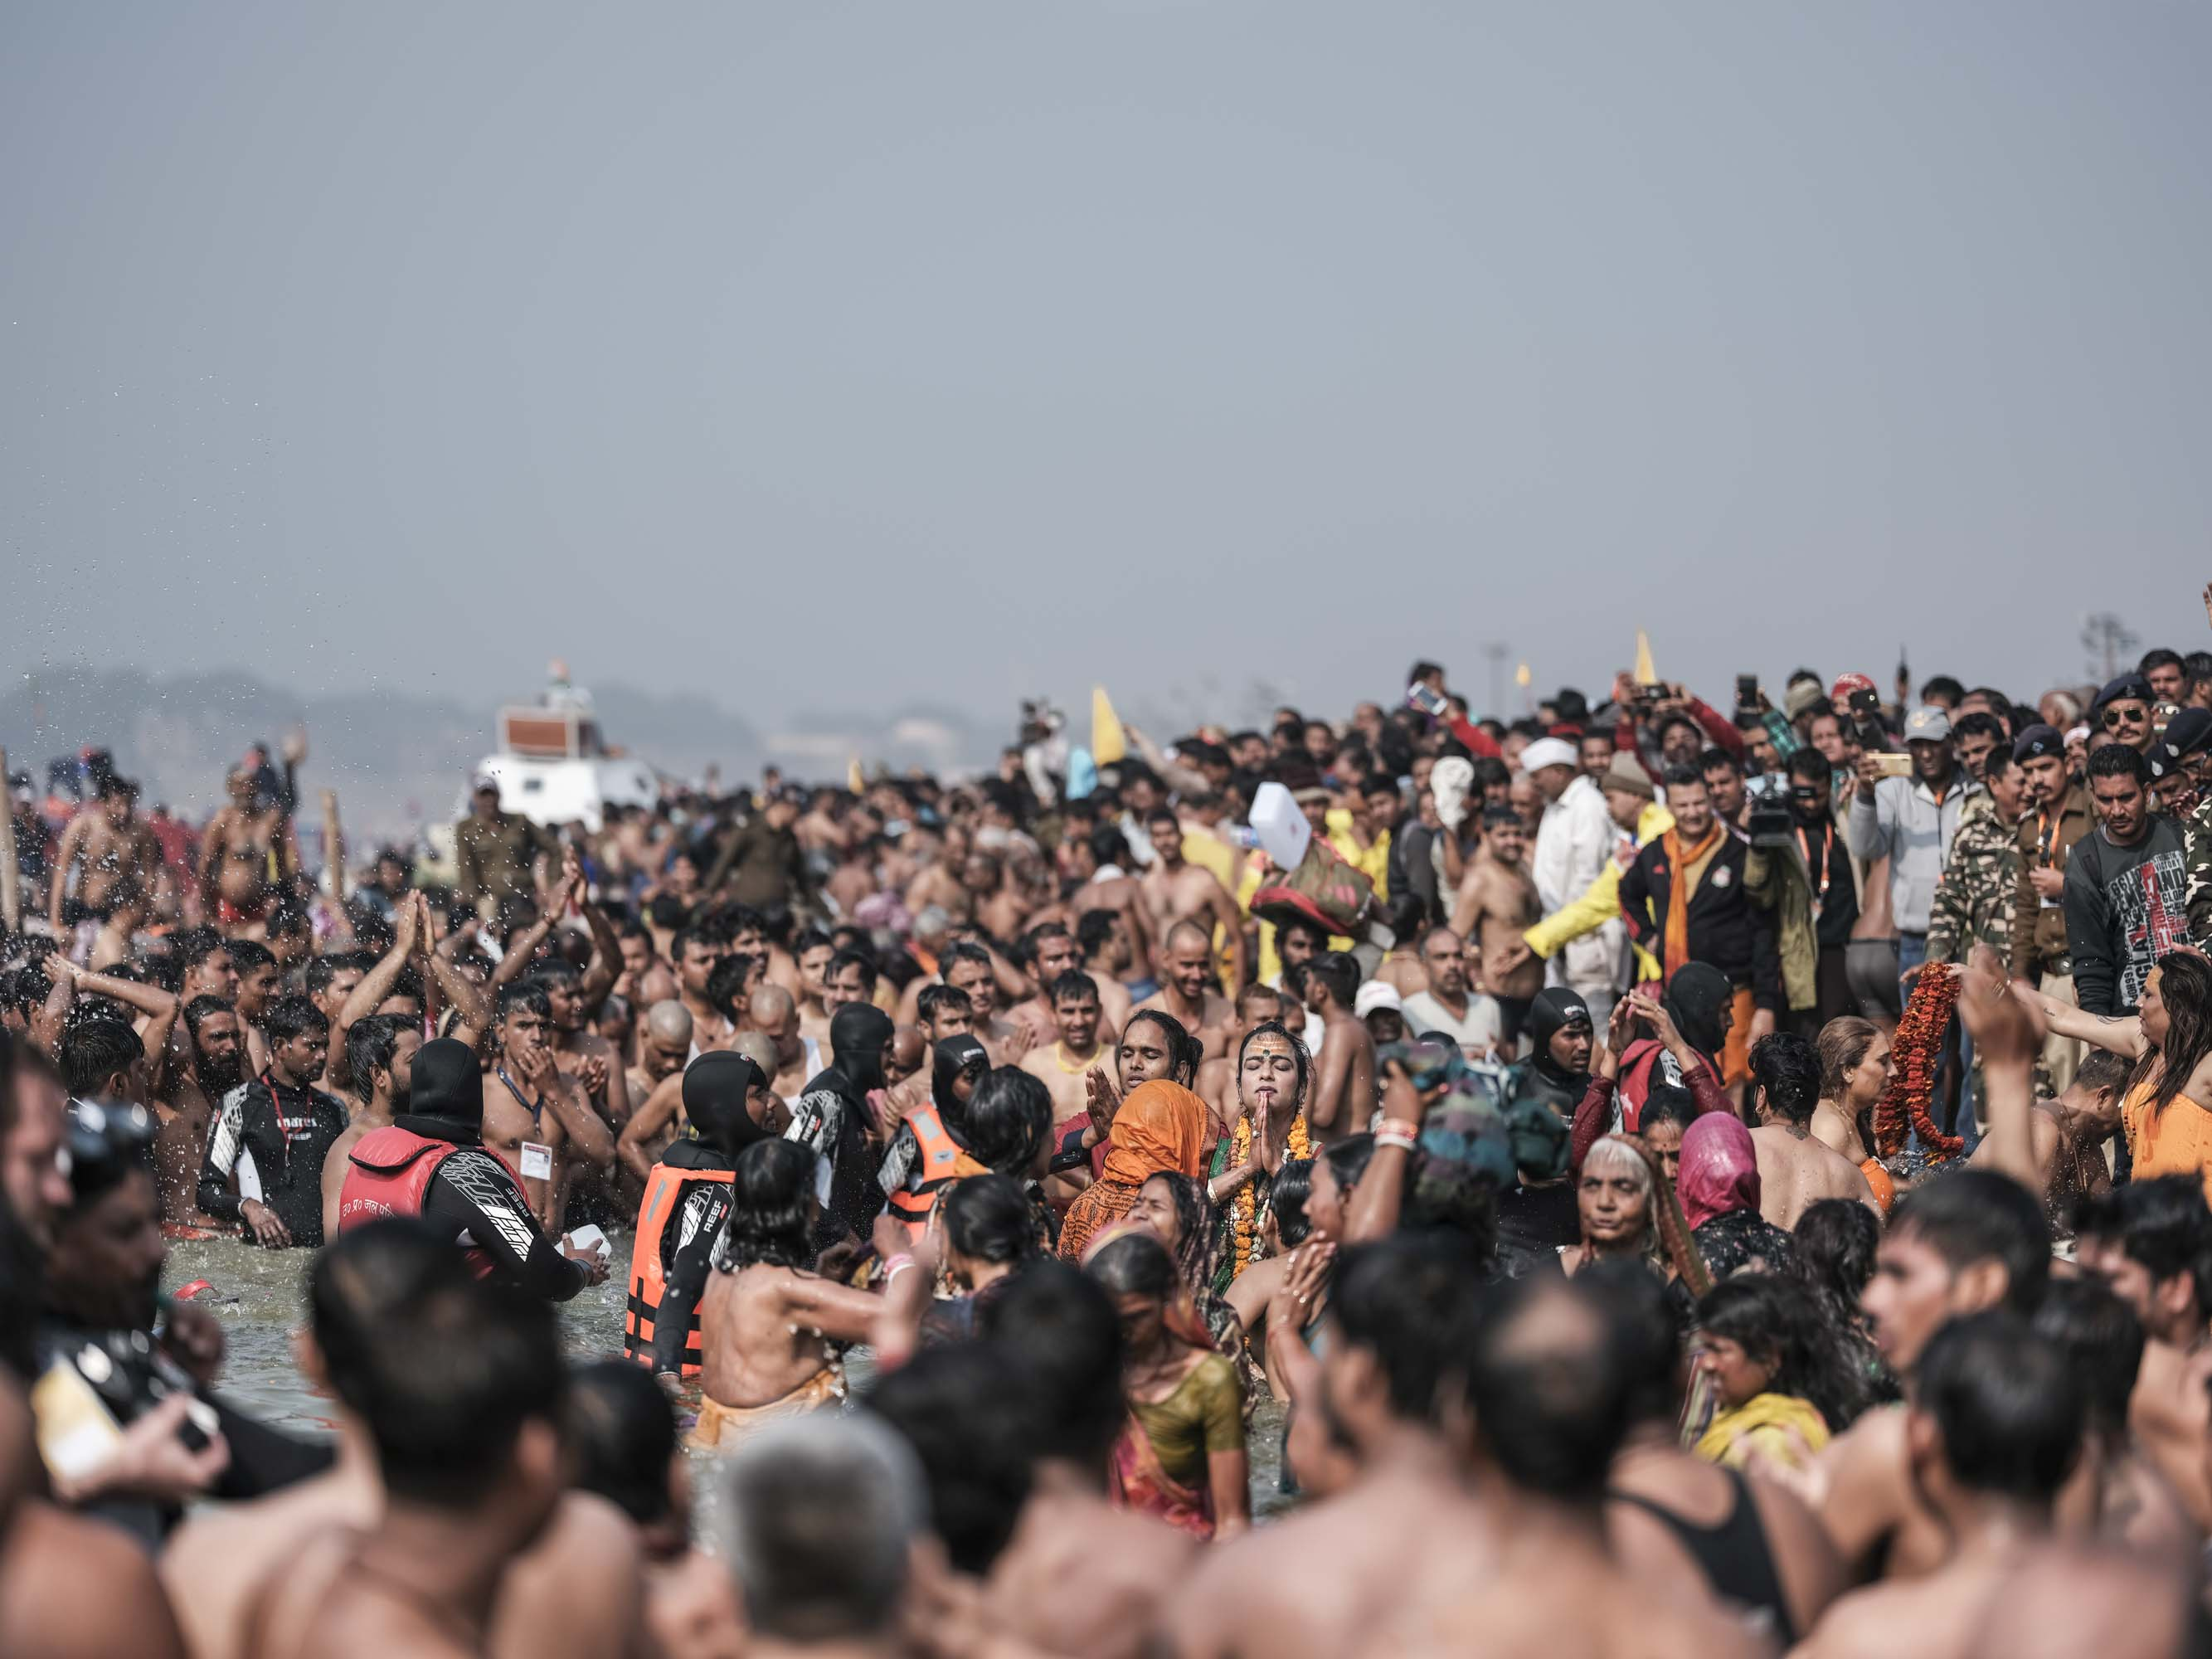 crowed transgender 4 February pilgrims Kumbh mela 2019 India Allahabad Prayagraj Ardh hindu religious Festival event rivers photographer jose jeuland photography